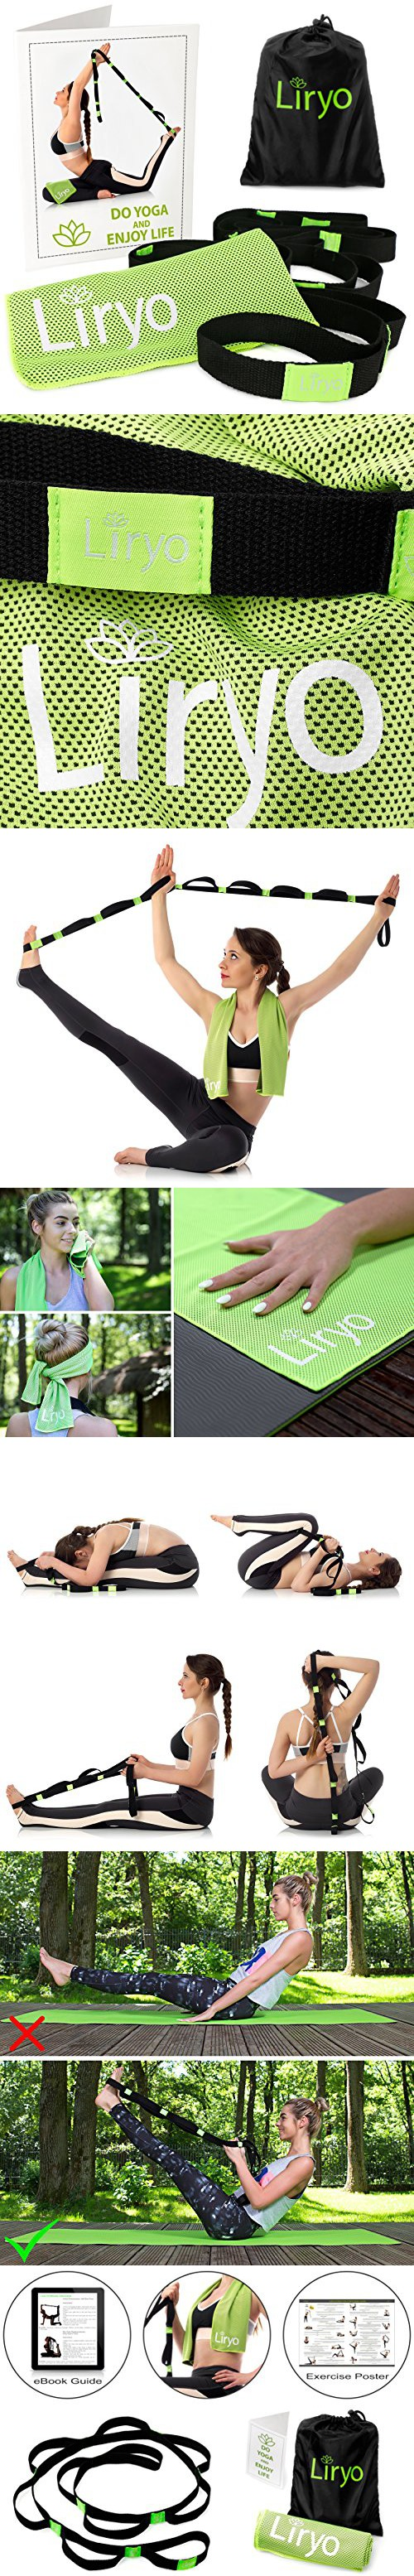 Liryo Yoga Strap For Stretching With Loops Non Elastic Stretch